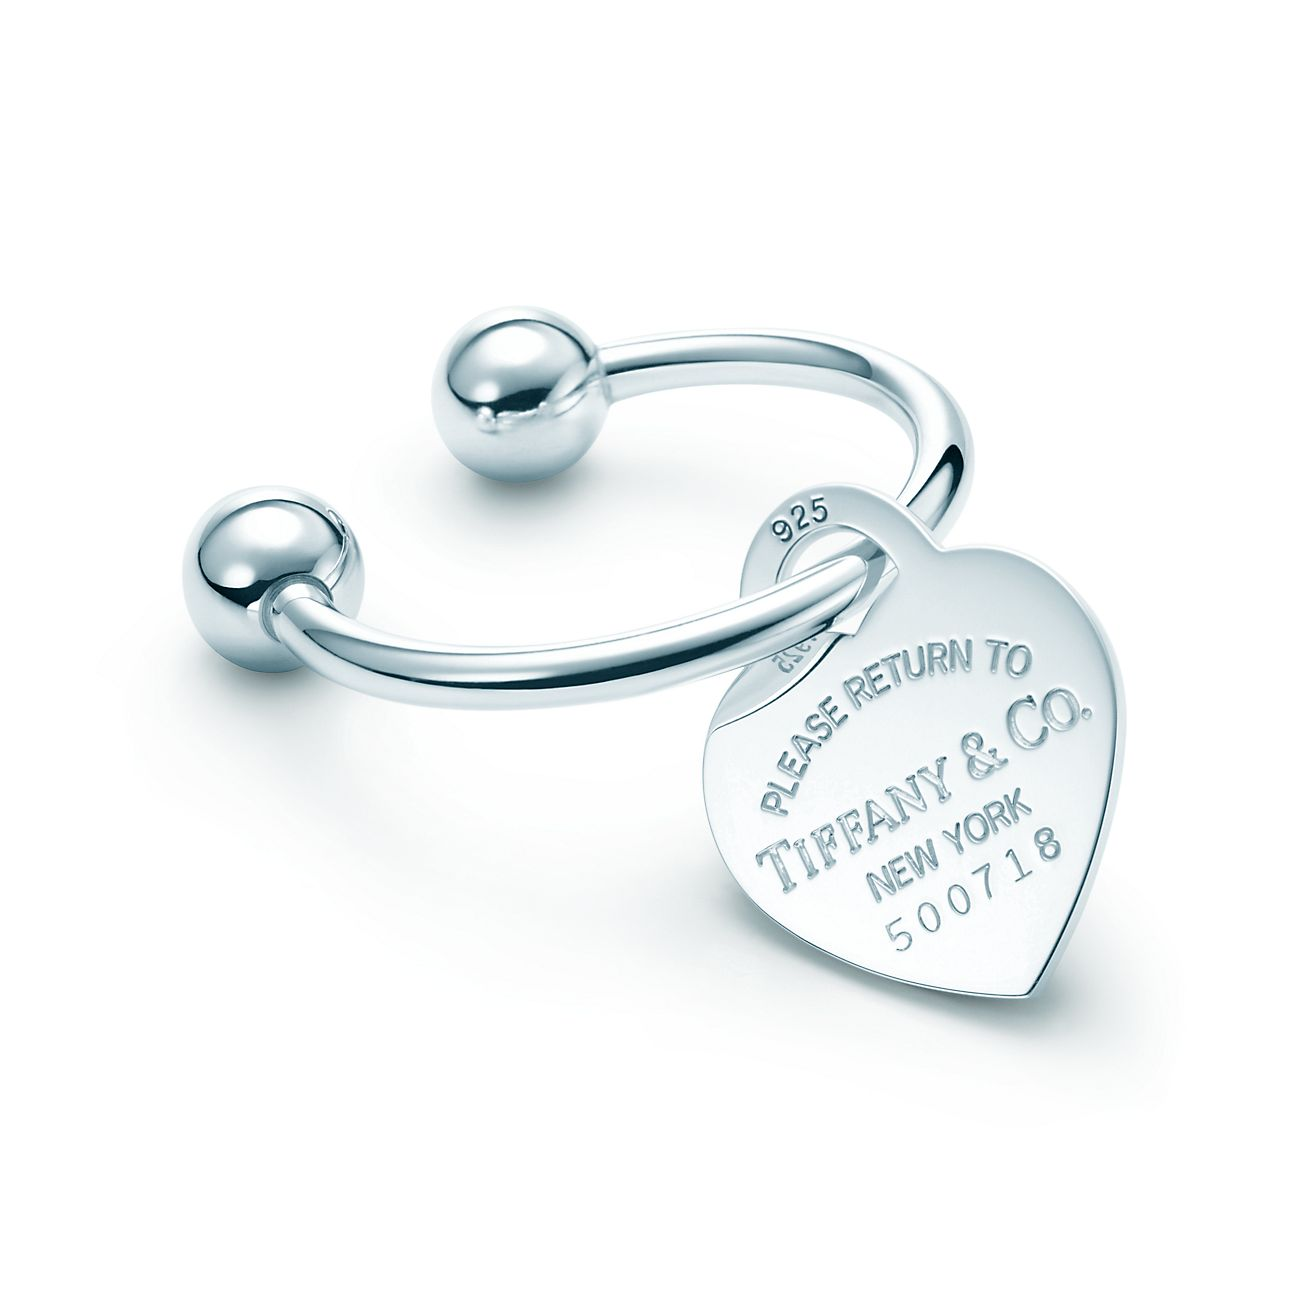 F6c709 Tiffany Key Ring Quick Shopping Tiffany Key Rings